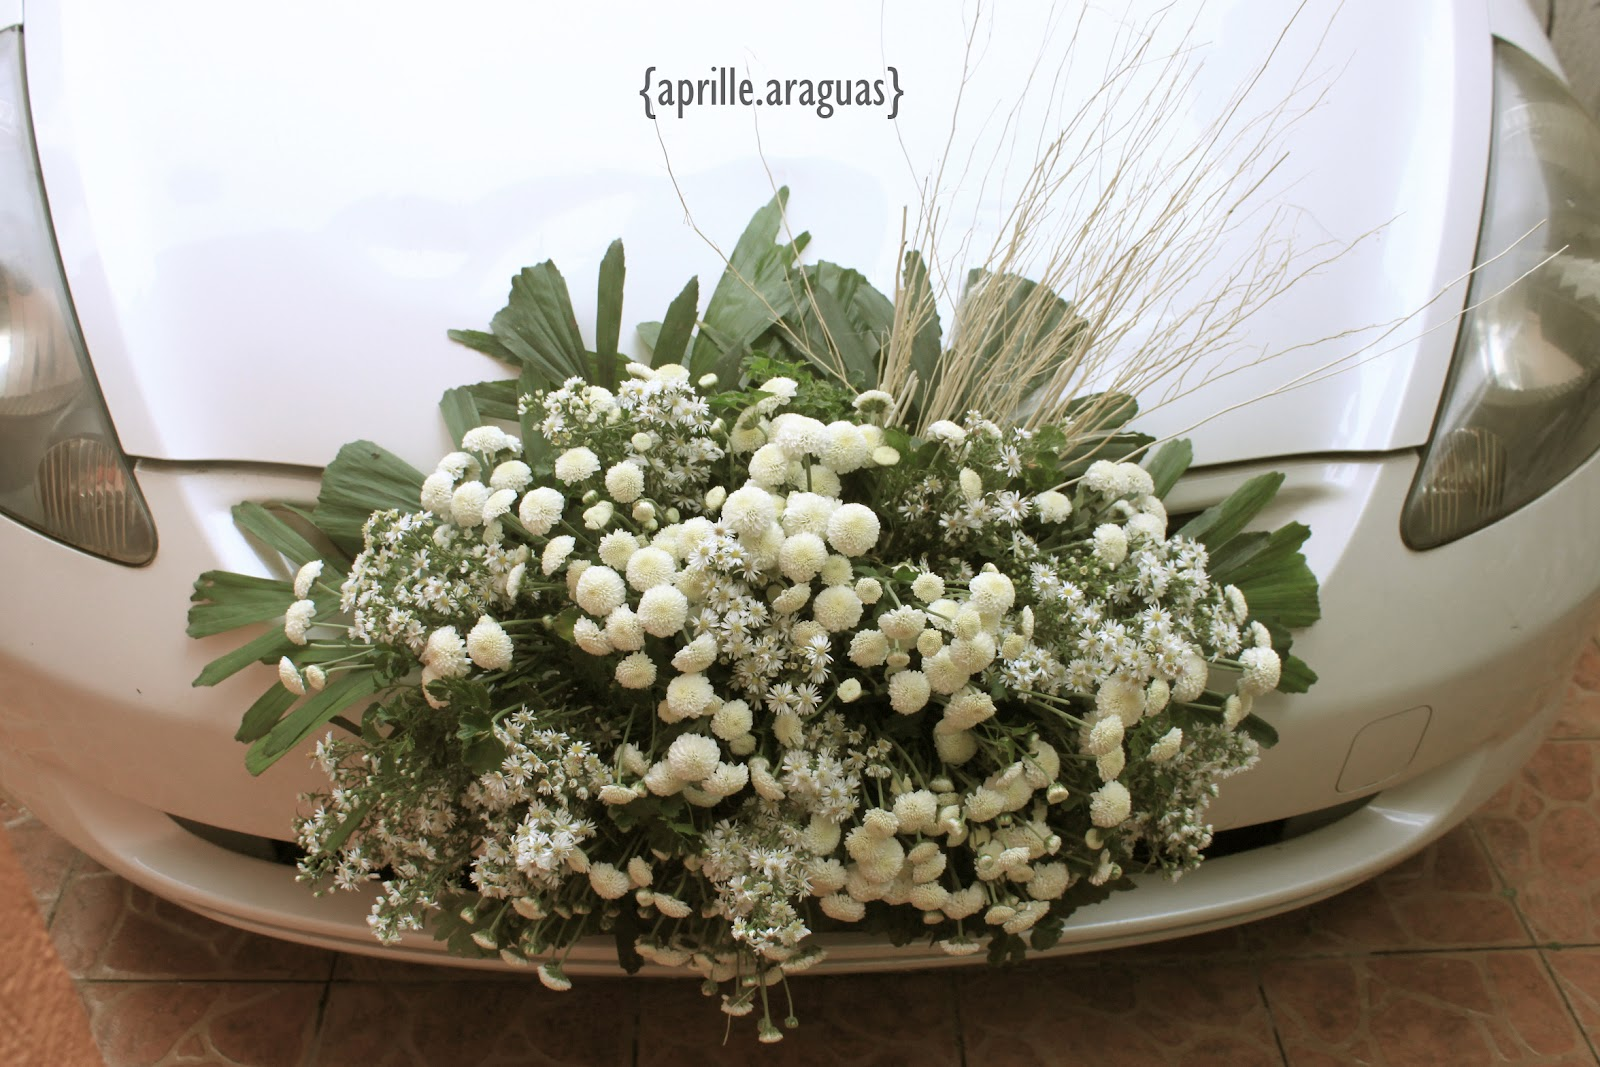 Design of bridal car - Bridal Car Arrangement Flowers Aster White Buttons With Accent Of Twigs To Match Up The Aisle Concept